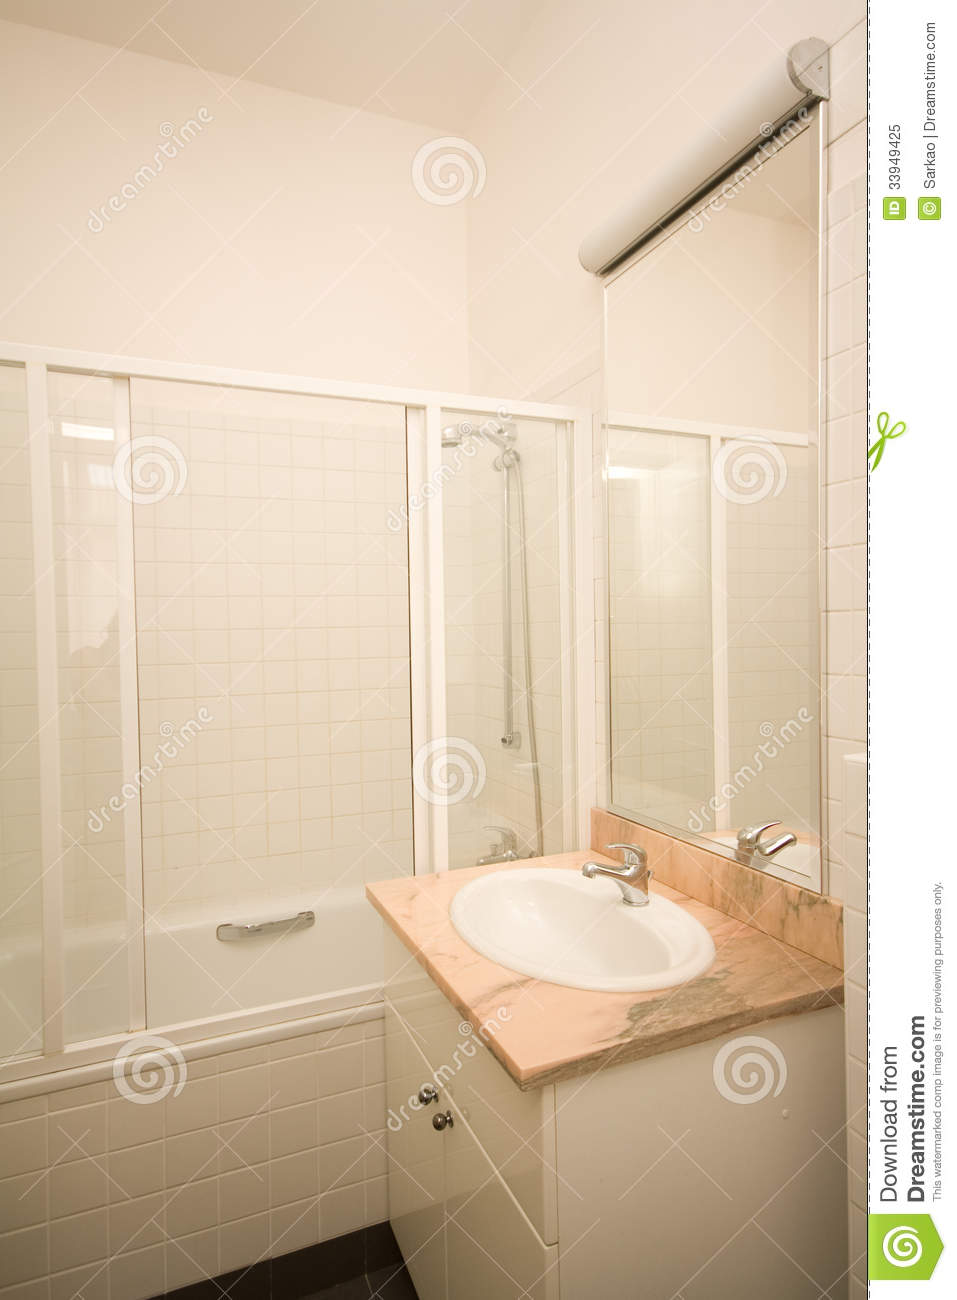 Simple Bathroom Royalty Free Stock Photo Image 33949425